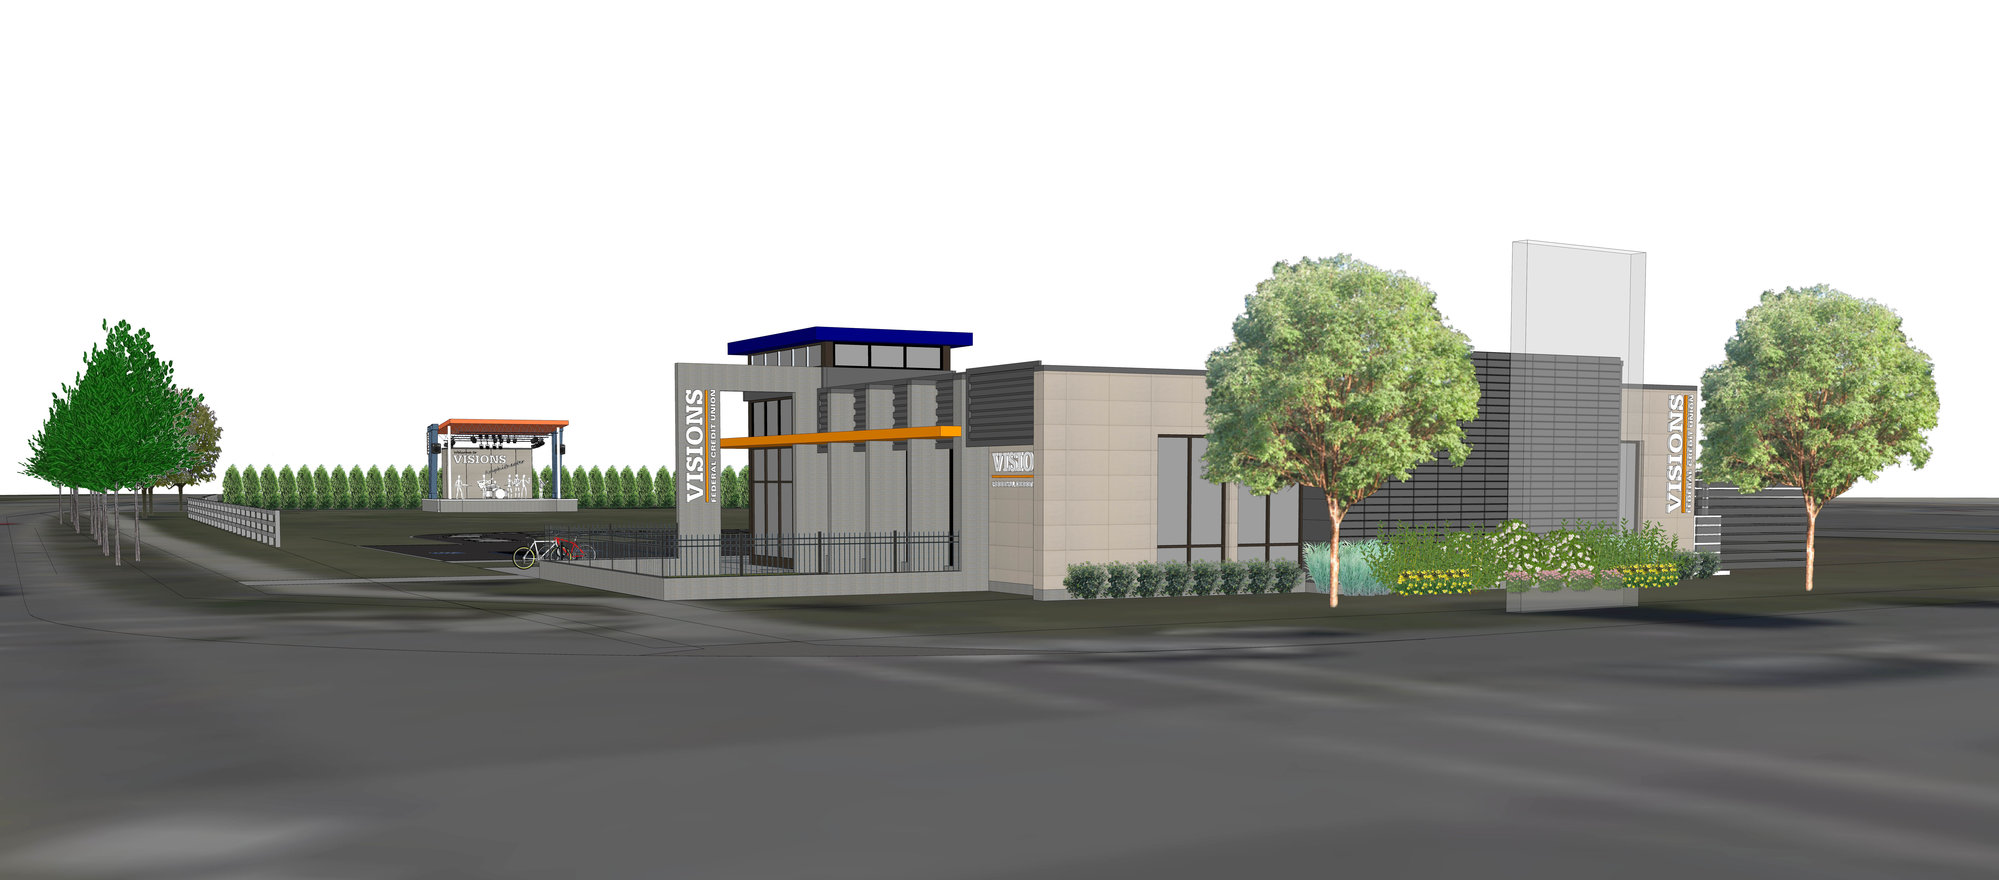 A rendering of Visions Federal Credit Union's new building, an expansion planned for Ithaca. VFCU, based in Binghamton, is expanding to Tompkins County and adding an ampitheatre. The project is set to be complete by the send of the summer.